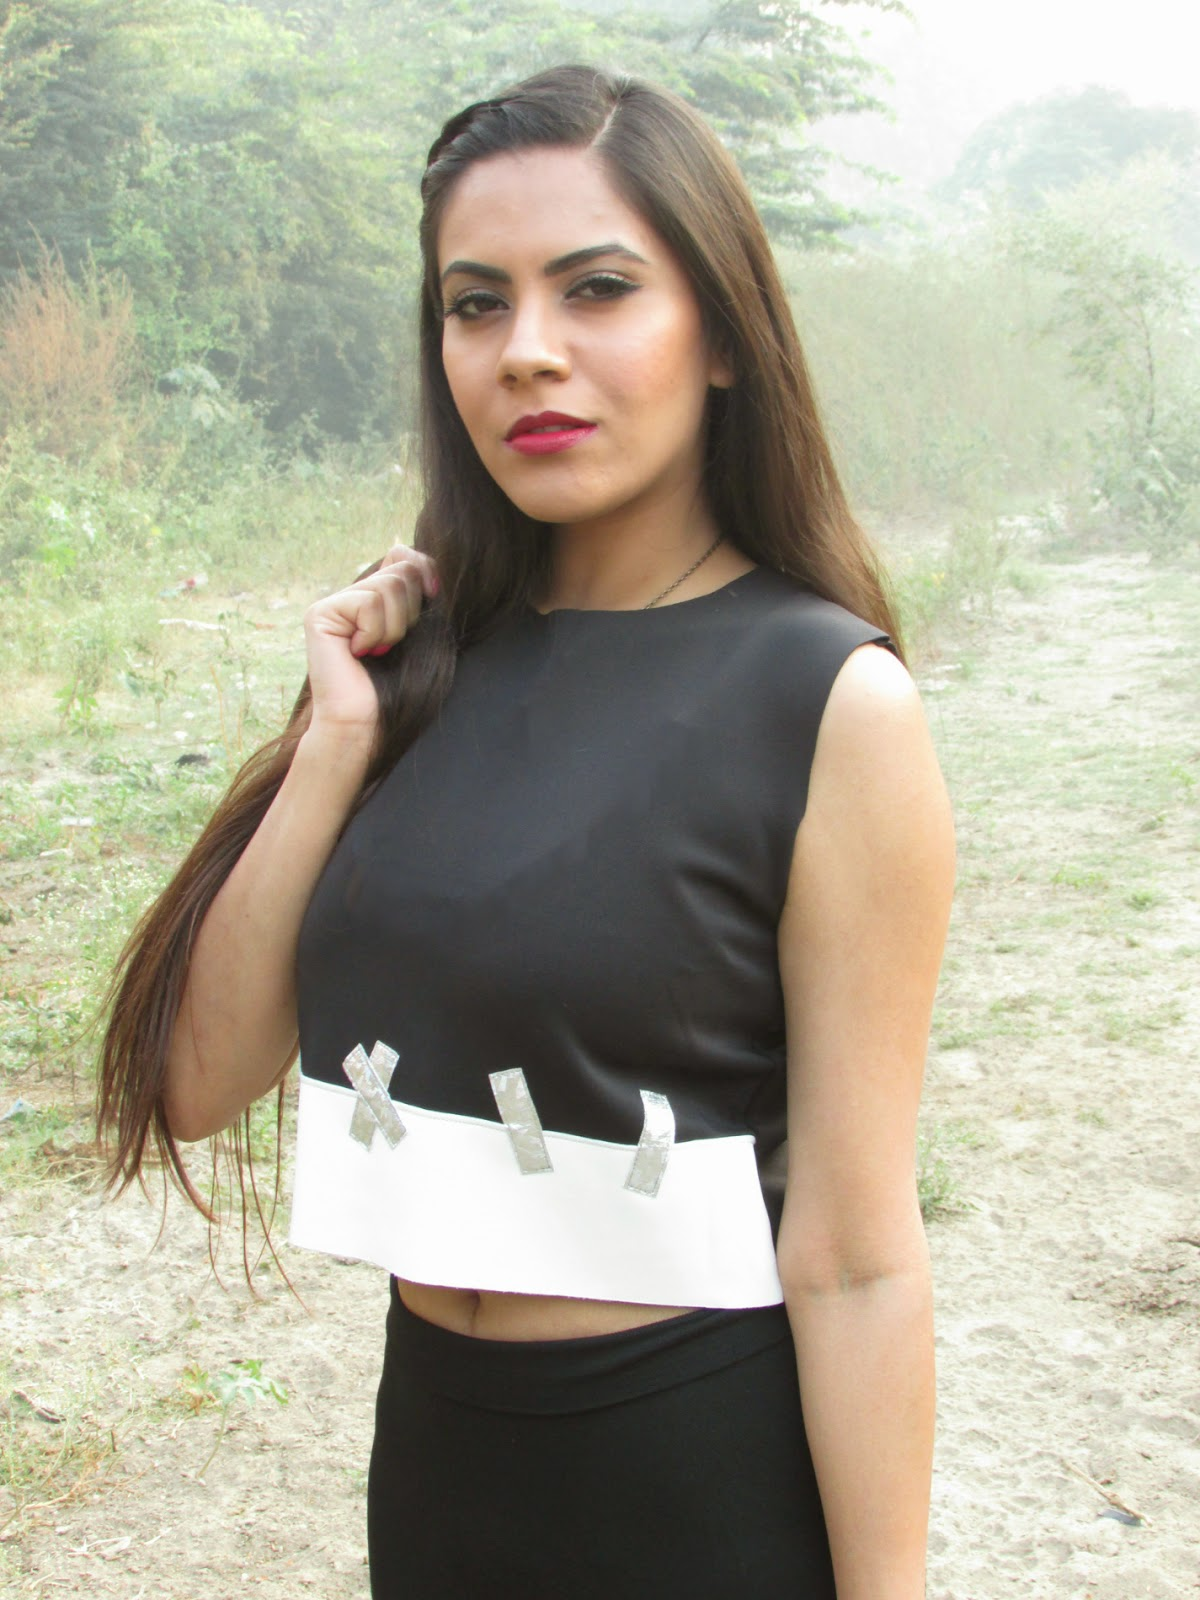 crop top, black white crop top, monochromatic crop top, how to style crop top , how to wear crop top, cheap crop top, cheap crop top online, cheap crop top india, crop to india, crop top online india, front row shop , front row shop crop top, crop top front row shop,t-shirt , slogan tshirt , tshirt , tee, slogan tee , diamonds , girls and diamonds , diamond tshirt , big diamond, big diamonfd for girls, indian , indian beauty blogger , indian fashion blogger , indian fashion , indian beauty , indian blog , indian fashion blog , blogger, hindi slogan tshirts, funny slogan tshirts, cute slogan tshirts, Leopard, leopard print, leopard print coat, leopard print shoes, leopard print sweatshirt, leopard print loafers, leopard print shirt, leopard print top, leopard print trench coat, leopard print leggings, leopard print heels, leopard print pumps, leopard print wallet, leopard print bag, leopard print sling bag , leopard print furry coat, leopard print sweater, leopard print pullover, leopard print cardigan, leopard shoes, leopard sweatshirt, leopard loafers, leopard shirt, leopard top, leopard trench coat, leopard leggings, leopard heels, leopard pumps, leopard wallet, leopard bag, leopard sling bag , leopard furry coat, leopard sweater, leopard pullover, leopard cardigan, front row shop leopard print shoes, front row shop leopard print sweatshirt, front row shop leopard print loafers, front row shop front row shop leopard print shirt, front row shop leopard print top, front row shop leopard print trench coat, front row shop leopard print leggings, front row shop leopard print heels, front row shop leopard print pumps, front row shop leopard print wallet, front row shop leopard print bag, front row shop leopard print sling bag ,front row shop leopard print furry coat, front row shop leopard print sweater, front row shop leopard print pullover, front row shop leopard print cardigan, Cheap leopard print shoes, Cheap leopard print sweatshirt, Cheap leopard print loafers, Cheap leopard print shirt, Cheap leopard print top, Cheap leopard print trench coat, Cheap leopard print leggings, Cheap leopard print heels, Cheap leopard print pumps, Cheap leopard print wallet, Cheap leopard print bag, Cheap leopard print sling bag , Cheap leopard print furry coat, Cheap leopard print sweater, Cheap leopard print pullover, Cheap leopard print cardigan, Velvet, velvet top, velvet skirt, velvet dress, velvet clothes, velvet jacket, velvet coat, velvet skater skirt, velvet full sleeves top, velvet tshirt , velvet shirt, Blue Velvet, blue velvet top, blue velvet skirt, blue velvet dress, blue velvet clothes,blue velvet jacket, blue velvet coat, blue velvet skater skirt, blue velvet full sleeves top, blue velvet tshirt , blue velvet shirt, FrontRowshop Velvet, FrontRowshop velvet top, FrontRowshop velvet skirt, FrontRowshop velvet dress, FrontRowshop velvet clothes,FrontRowshop  velvet jacket, FrontRowshop velvet coat, FrontRowshop velvet skater skirt, FrontRowshop velvet full sleeves top, FrontRowshop velvet tshirt , FrontRowshop velvet shirt,Velvet price , velvet top price, velvet skirtprice , velvet dress price , velvet clothes  price , velvet jacket price, velvet coat price, velvet skater skirt price, velvet full sleeves top price, velvet tshirt  price ,velvet shirtprice,Pants, snakes pants, fitted pants, printed smokey pants, printed fitted pants, geometric pants, geometric print, geometric print pants, geometric  smokey pants, geometric printed smokey trousers, smokey trousers, printed smokey trousers, trousers, pattern trousers, pattern pants, pattern bottoms, geometric pattern pants, geometric pattern trousers, silver trousers, silver pants, silver smokey pants, glittery pants, glittery silver pants,brocade , brocade pants, brocade trousers, brocade smokey pants, brocade fitted pants, brocade printed pants , brocade geometric pants, brocade geometric pattern pants, brocade geometric print pants, silver brocade pants, silver shinny brocade pants,Wishlist, clothes wishlist, persumall wishlist, frontrowshop, frontrowshop.com, frontrowshop.com wishlist, autumn wishlist,autumn frontrowshop wishlist, autumn clothes wishlist, autumn shoes wishlist, autumn bags wishlist, autumn boots wishlist, autumn pullovers wishlist, autumn cardigans wishlist, autymn coats wishlist, frontrowshop clothes wishlist, frontrowshop bags wishlist, frontrowshop bags wishlist, frontrowshop boots wishlist, frontrowshop pullover wishlist, frontrowshop cardigans wishlist, frontrowshop autum clothes wishlist, winter clothes, wibter clothes wishlist, winter wishlist, wibter pullover wishlist, winter bags wishlist, winter boots wishlist, winter cardigans wishlist, winter leggings wishlist, frontrowshop winter clothes, frontrowshop autumn clothes, frontrowshop winter collection, frontrowshop autumn collection,Cheap clothes online,cheap dresses online, cheap jumpsuites online, cheap leggings online, cheap shoes online, cheap wedges online , cheap skirts online, cheap jewellery online, cheap jackets online, cheap jeans online, cheap maxi online, cheap makeup online, cheap cardigans online, cheap accessories online, cheap coats online,cheap brushes online,cheap tops online, chines clothes online, Chinese clothes,Chinese jewellery ,Chinese jewellery online,Chinese heels online,Chinese electronics online,Chinese garments,Chinese garments online,Chinese products,Chinese products online,Chinese accessories online,Chinese inline clothing shop,Chinese online shop,Chinese online shoes shop,Chinese online jewellery shop,Chinese cheap clothes online,Chinese  clothes shop online, korean online shop,korean garments,korean makeup,korean makeup shop,korean makeup online,korean online clothes,korean online shop,korean clothes shop online,korean dresses online,korean dresses online,cheap Chinese clothes,cheap korean clothes,cheap Chinese makeup,cheap korean makeup,cheap korean shopping ,cheap Chinese shopping,cheap Chinese online shopping,cheap korean online shopping,cheap Chinese shopping website,cheap korean shopping website, cheap online shopping,online shopping,how to shop online ,how to shop clothes online,how to shop shoes online,how to shop jewellery online,how to shop mens clothes online, mens shopping online,boys shopping online,boys jewellery online,mens online shopping,mens online shopping website,best Chinese shopping website, Chinese online shopping website for men,best online shopping website for women,best korean online shopping,best korean online shopping website,korean fashion,korean fashion for women,korean fashion for men,korean fashion for girls,korean fashion for boys,best chinese online shopping,best chinese shopping website,best chinese online shopping website,wholesale chinese shopping website,wholesale shopping website,chinese wholesale shopping online,chinese wholesale shopping, chinese online shopping on wholesale prices, clothes on wholesale prices,cholthes on wholesake prices,clothes online on wholesales prices,online shopping, online clothes shopping, online jewelry shopping,how to shop online, how to shop clothes online, how to shop earrings online, how to shop,skirts online, dresses online,jeans online, shorts online, tops online, blouses online,shop tops online, shop blouses online, shop skirts online, shop dresses online, shop botoms online, shop summer dresses online, shop bracelets online, shop earrings online, shop necklace online, shop rings online, shop highy low skirts online, shop sexy dresses onle, men's clothes online, men's shirts online,men's jeans online, mens.s jackets online, mens sweaters online, mens clothes, winter coats online, sweaters online, cardigens online,beauty , fashion,beauty and fashion,beauty blog, fashion blog , indian beauty blog,indian fashion blog, beauty and fashion blog, indian beauty and fashion blog, indian bloggers, indian beauty bloggers, indian fashion bloggers,indian bloggers online, top 10 indian bloggers, top indian bloggers,top 10 fashion bloggers, indian bloggers on blogspot,home remedies, how to,persunmall online shopping,persunmall online shopping review,frontrowshop.com review,frontrowshop online clothing store,frontrowshop online chinese store,frontrowshop online shopping,frontrowshop site review,frontrowshop.com site review, frontrowshop Chines fashion, frontrowshop , frontrowshop.com, frontrowshop clothing, frontrowshop dresses, frontrowshop shoes, frontrowshop accessories,frontrowshop men cloths ,frontrowshop makeup, frontrowshop helth products,frontrowshop Chinese online shopping, frontrowshop Chinese store, frontrowshop online chinese shopping, frontrowshopchinese shopping online,frontrowshop, frontrowshop dresses, frontrowshop clothes, frontrowshop garments, frontrowshop clothes, frontrowshop skirts, frontrowshop pants, frontrowshop tops, frontrowshop cardigans, frontrowshop leggings, frontrowshop fashion , frontrowshop clothes fashion, frontrowshop footwear, frontrowshop fashion footwear, frontrowshop jewellery, frontrowshop fashion jewellery, frontrowshop rings, frontrowshop necklace, frontrowshop bracelets, frontrowshop earings,Autumn, fashion, frontrowshop, wishlist,Winter,fall, fall abd winter, winter clothes , fall clothes, fall and winter clothes, fall jacket, winter jacket, fall and winter jacket, fall blazer, winter blazer, fall and winter blazer, fall coat , winter coat, falland winter coat, fall coverup, winter coverup, fall and winter coverup, outerwear, coat , jacket, blazer, fall outerwear, winter outerwear, fall and winter outerwear, woolen clothes, wollen coat, woolen blazer, woolen jacket, woolen outerwear, warm outerwear, warm jacket, warm coat, warm blazer, warm sweater, coat , white coat, white blazer, white coat, white woolen blazer, white coverup, white woolens,frontrowshop online shopping review,frontrowshop.com review,frontrowshop online clothing store,frontrowshop online chinese store,frontrowshop online shopping,frontrowshop site review,frontrowshop.com site review, frontrowshop Chines fashion, persunmall , frontrowshop.com, frontrowshop clothing, frontrowshop dresses, frontrowshop shoes, frontrowshop accessories,frontrowshop men cloths ,frontrowshop makeup, frontrowshop helth products,frontrowshop Chinese online shopping, frontrowshop Chinese store, frontrowshop online chinese shopping, frontrowshopchinese shopping online,frontrowshop, frontrowshop dresses, frontrowshop clothes, frontrowshop garments, frontrowshop clothes, frontrowshop skirts, frontrowshop pants, frontrowshop tops, frontrowshop cardigans, frontrowshop leggings, persunmall fashion , frontrowshop clothes fashion, frontrowshop footwear, frontrowshop fashion footwear, frontrowshop jewellery, frontrowshop fashion jewellery, frontrowshop rings, frontrowshop necklace, frontrowshop bracelets, frontrowshop earings,latest fashion trends online, online shopping, online shopping in india, online shopping in india from america, best online shopping store , best fashion clothing store, best online fashion clothing store, best online jewellery store, best online footwear store, best online store, beat online store for clothes, best online store for footwear, best online store for jewellery, best online store for dresses, worldwide shipping free, free shipping worldwide, online store with free shipping worldwide,best online store with worldwide shipping free,low shipping cost, low shipping cost for shipping to india, low shipping cost for shipping to asia, low shipping cost for shipping to korea,Friendship day , friendship's day, happy friendship's day, friendship day outfit, friendship's day outfit, how to wear floral shorts, floral shorts, styling floral shorts, how to style floral shorts, how to wear shorts, how to style shorts, how to style style denim shorts, how to wear denim shorts,how to wear printed shorts, how to style printed shorts, printed shorts, denim shorts, how to style black shorts, how to wear black shorts, how to wear black shorts with black T-shirts, how to wear black T-shirt, how to style a black T-shirt, how to wear a plain black T-shirt, how to style black T-shirt,how to wear shorts and T-shirt, what to wear with floral shorts, what to wear with black floral shorts,how to wear all black outfit, what to wear on friendship day, what to wear on a date, what to wear on a lunch date, what to wear on lunch, what to wear to a friends house, what to wear on a friends get together, what to wear on friends coffee date , what to wear for coffee,beauty,white tee, white top , white high low top, high low top, full sleves top, white full sleaves top, white top for winters, white pullover, whitw knitted pullover, pullover, high low pullover, latest trends in pullovers, pullover 2013, inter 2013, knitewear,Christmas, Xmas , Christmas gifts, Xmas gifts, Christmas presents, Xmas presents, Christmas goodies, Xmas goodies, Christmas decor, Xmas decor, Christmas gift ideas, Xmas gift ideas, Christmas gift guide, Xmas gift guide, Christmas gifts for girls, Xmas gifts for girls, Christmas presents for girls, Xmas presents for girls, Christmas presents for boys, Xmas presents for boys, Christmas gifts for boys, Xmas gifts for boys, Christmas gifts for men, Xmas gifts for men, Christmas presents for men, Xmas presents for men, Christmas presents for women, Christmas gifts for women, Xmas gifts for men, Xmas presents for women, Christmas gifts for mommy, Christmas presents for dad, Christmas present for brother, Christmas present for sister, Christmas present for grandparent, Christmas presents for friends, Christmas presents for boyfriend, Christmas presents for girlfriend, budget Christmas , budget Christmas present, budget Christmas gifts, cheap Christmas gifts, cheap Christmas gifts online, cheap Christmas present online, Christmas light, Christmas trees, Christmas tree,Christmas tree ornament, Christmas tree decor, DIY Christmas,Leggings, winter leggings, warm leggings, winter warm leggings, fall leggings, fall warm leggings, tights, warm tights, winter tights, winter warm tights, fall tights, fall warm tights,Vintage Bag , bag , Vintage , vintage looking bag , vintage style, bags , bags top , fun prints top , fun printed top , summer printed top , spring printed top , printed top for summers , printed top for spring ,vintage , Floral , vintage shirt , bracelet , pearls , braid , elegant , chic,Statement necklace, necklace, statement necklaces, big necklace, heavy necklaces , gold necklace, silver necklace, silver statement necklace, gold statement necklace, studded statement necklace , studded necklace, stone studded necklace, stone necklace, stove studded statement necklace, stone statement necklace, stone studded gold statement necklace, stone studded silver statement necklace, black stone necklace, black stone studded statement necklace, black stone necklace, black stone statement necklace, neon statement necklace, neon stone statement necklace, black and silver necklace, black and gold necklace, blank and silver statement necklace, black and gold statement necklace, silver jewellery, gold jewellery, stove jewellery, stone studded jewellery, imitation jewellery, artificial jewellery, junk jewellery, cheap jewellery